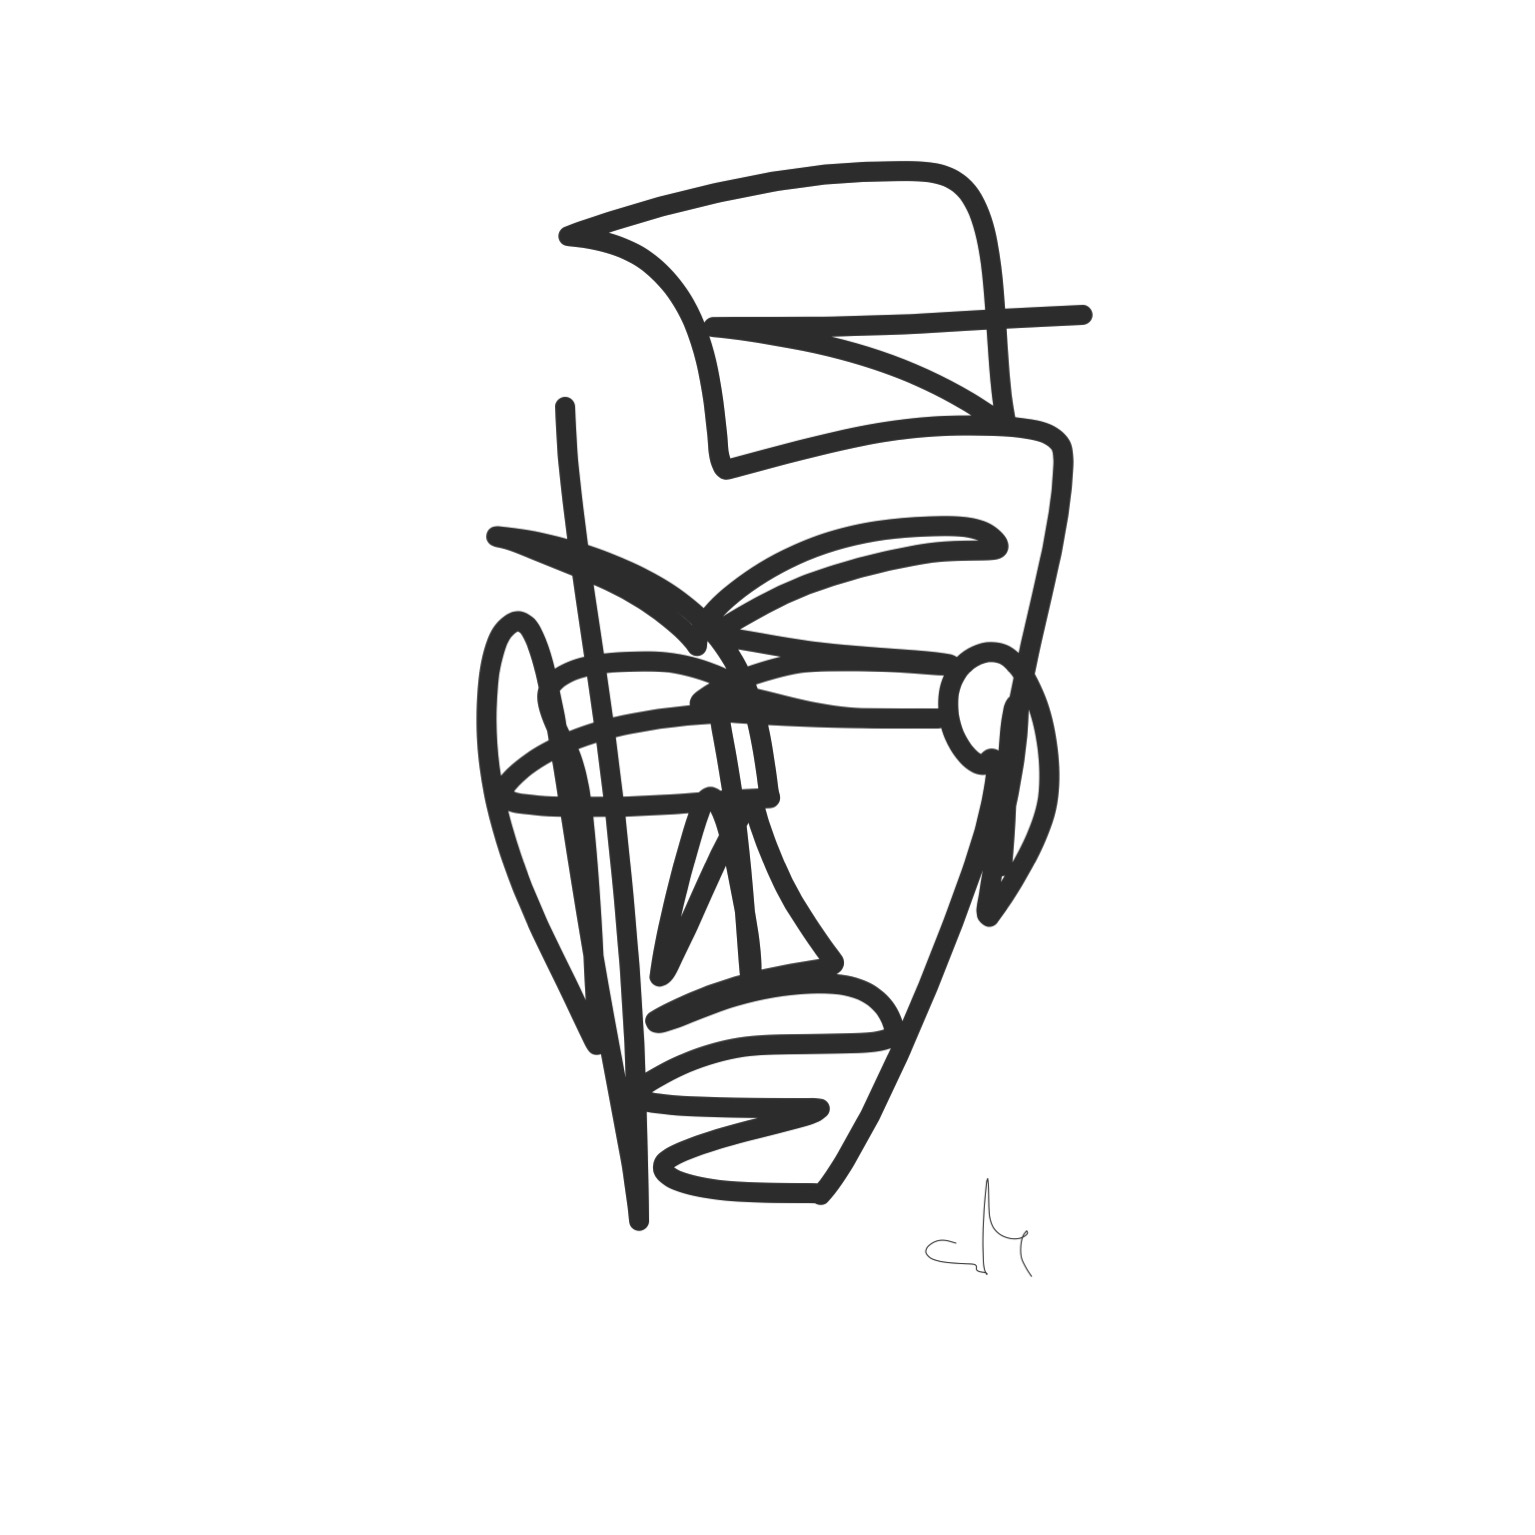 Coffeetographer_blind_contour_art_emily_king_switch_byimm